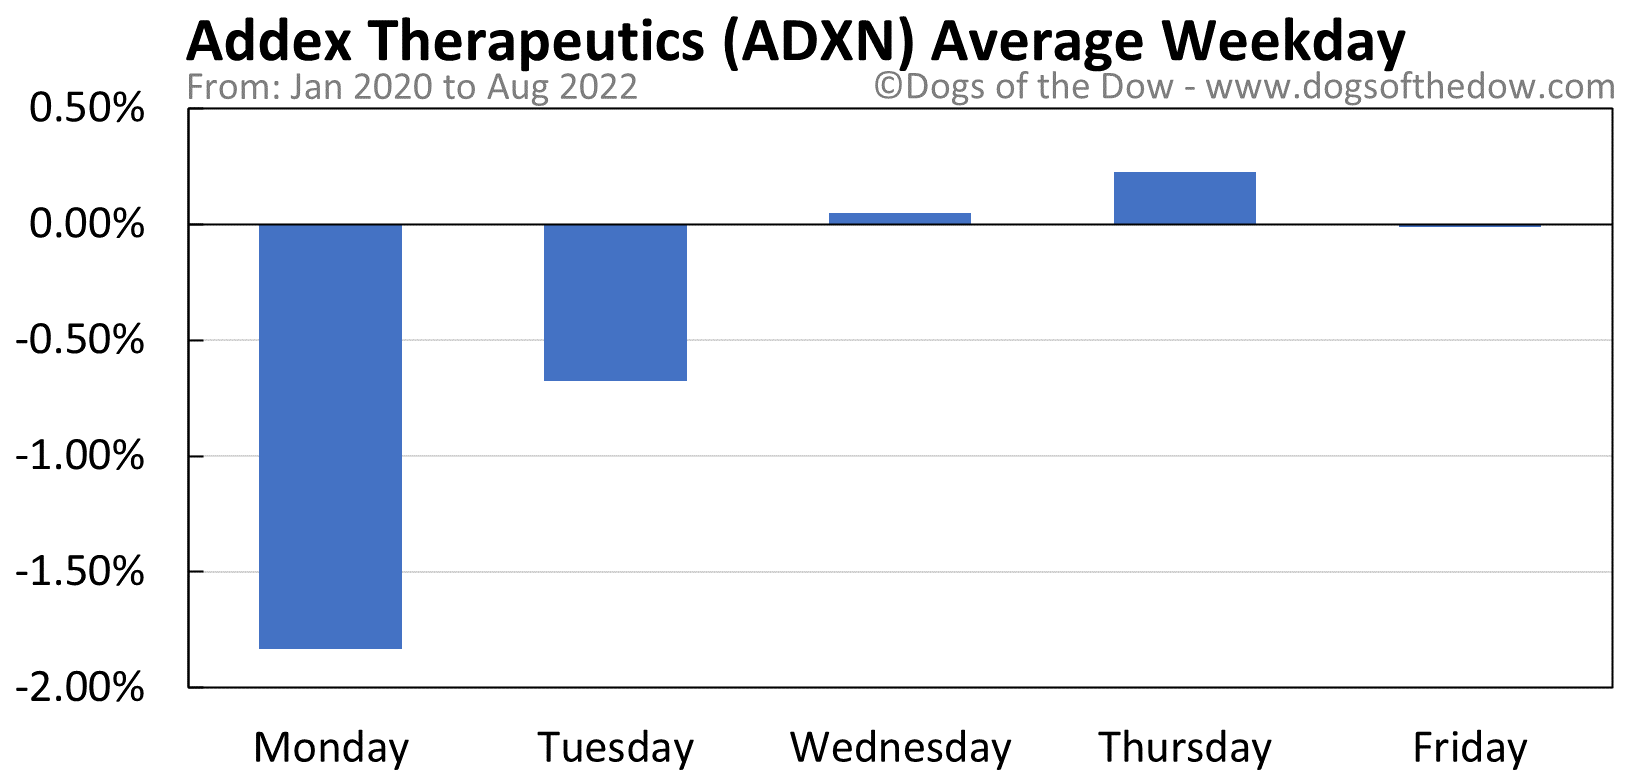 ADXN average weekday chart